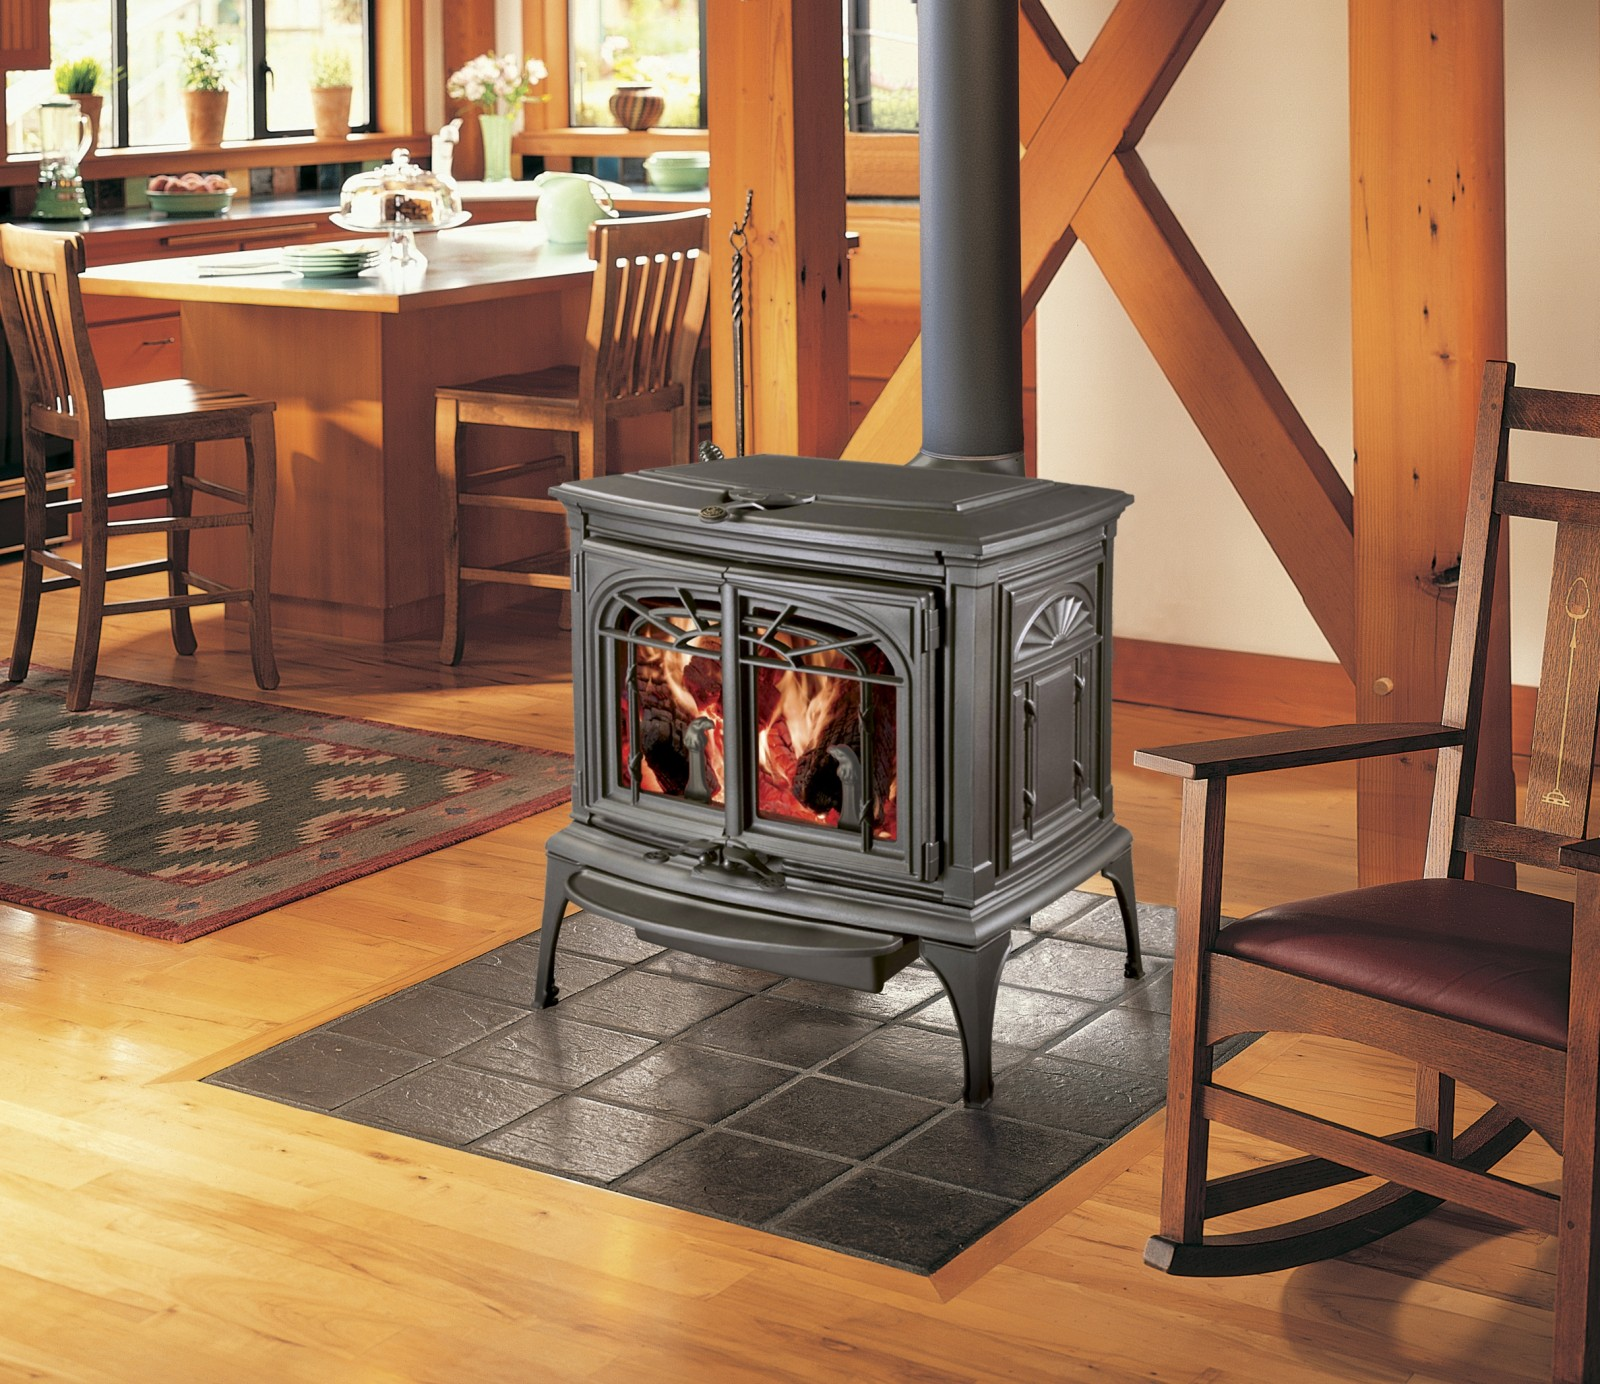 Fireplaces And Hearths For Sale In Okemos Mi Heat N Sweep